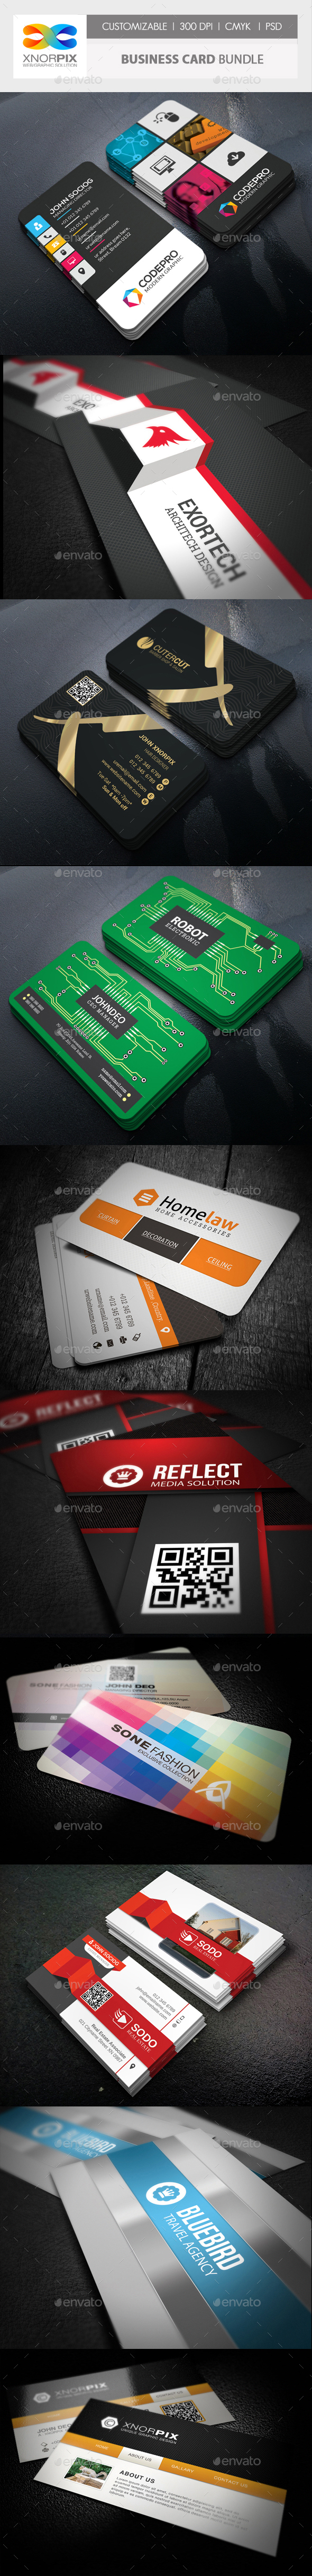 Business Card Bundle 10 in 1 - Corporate Business Cards